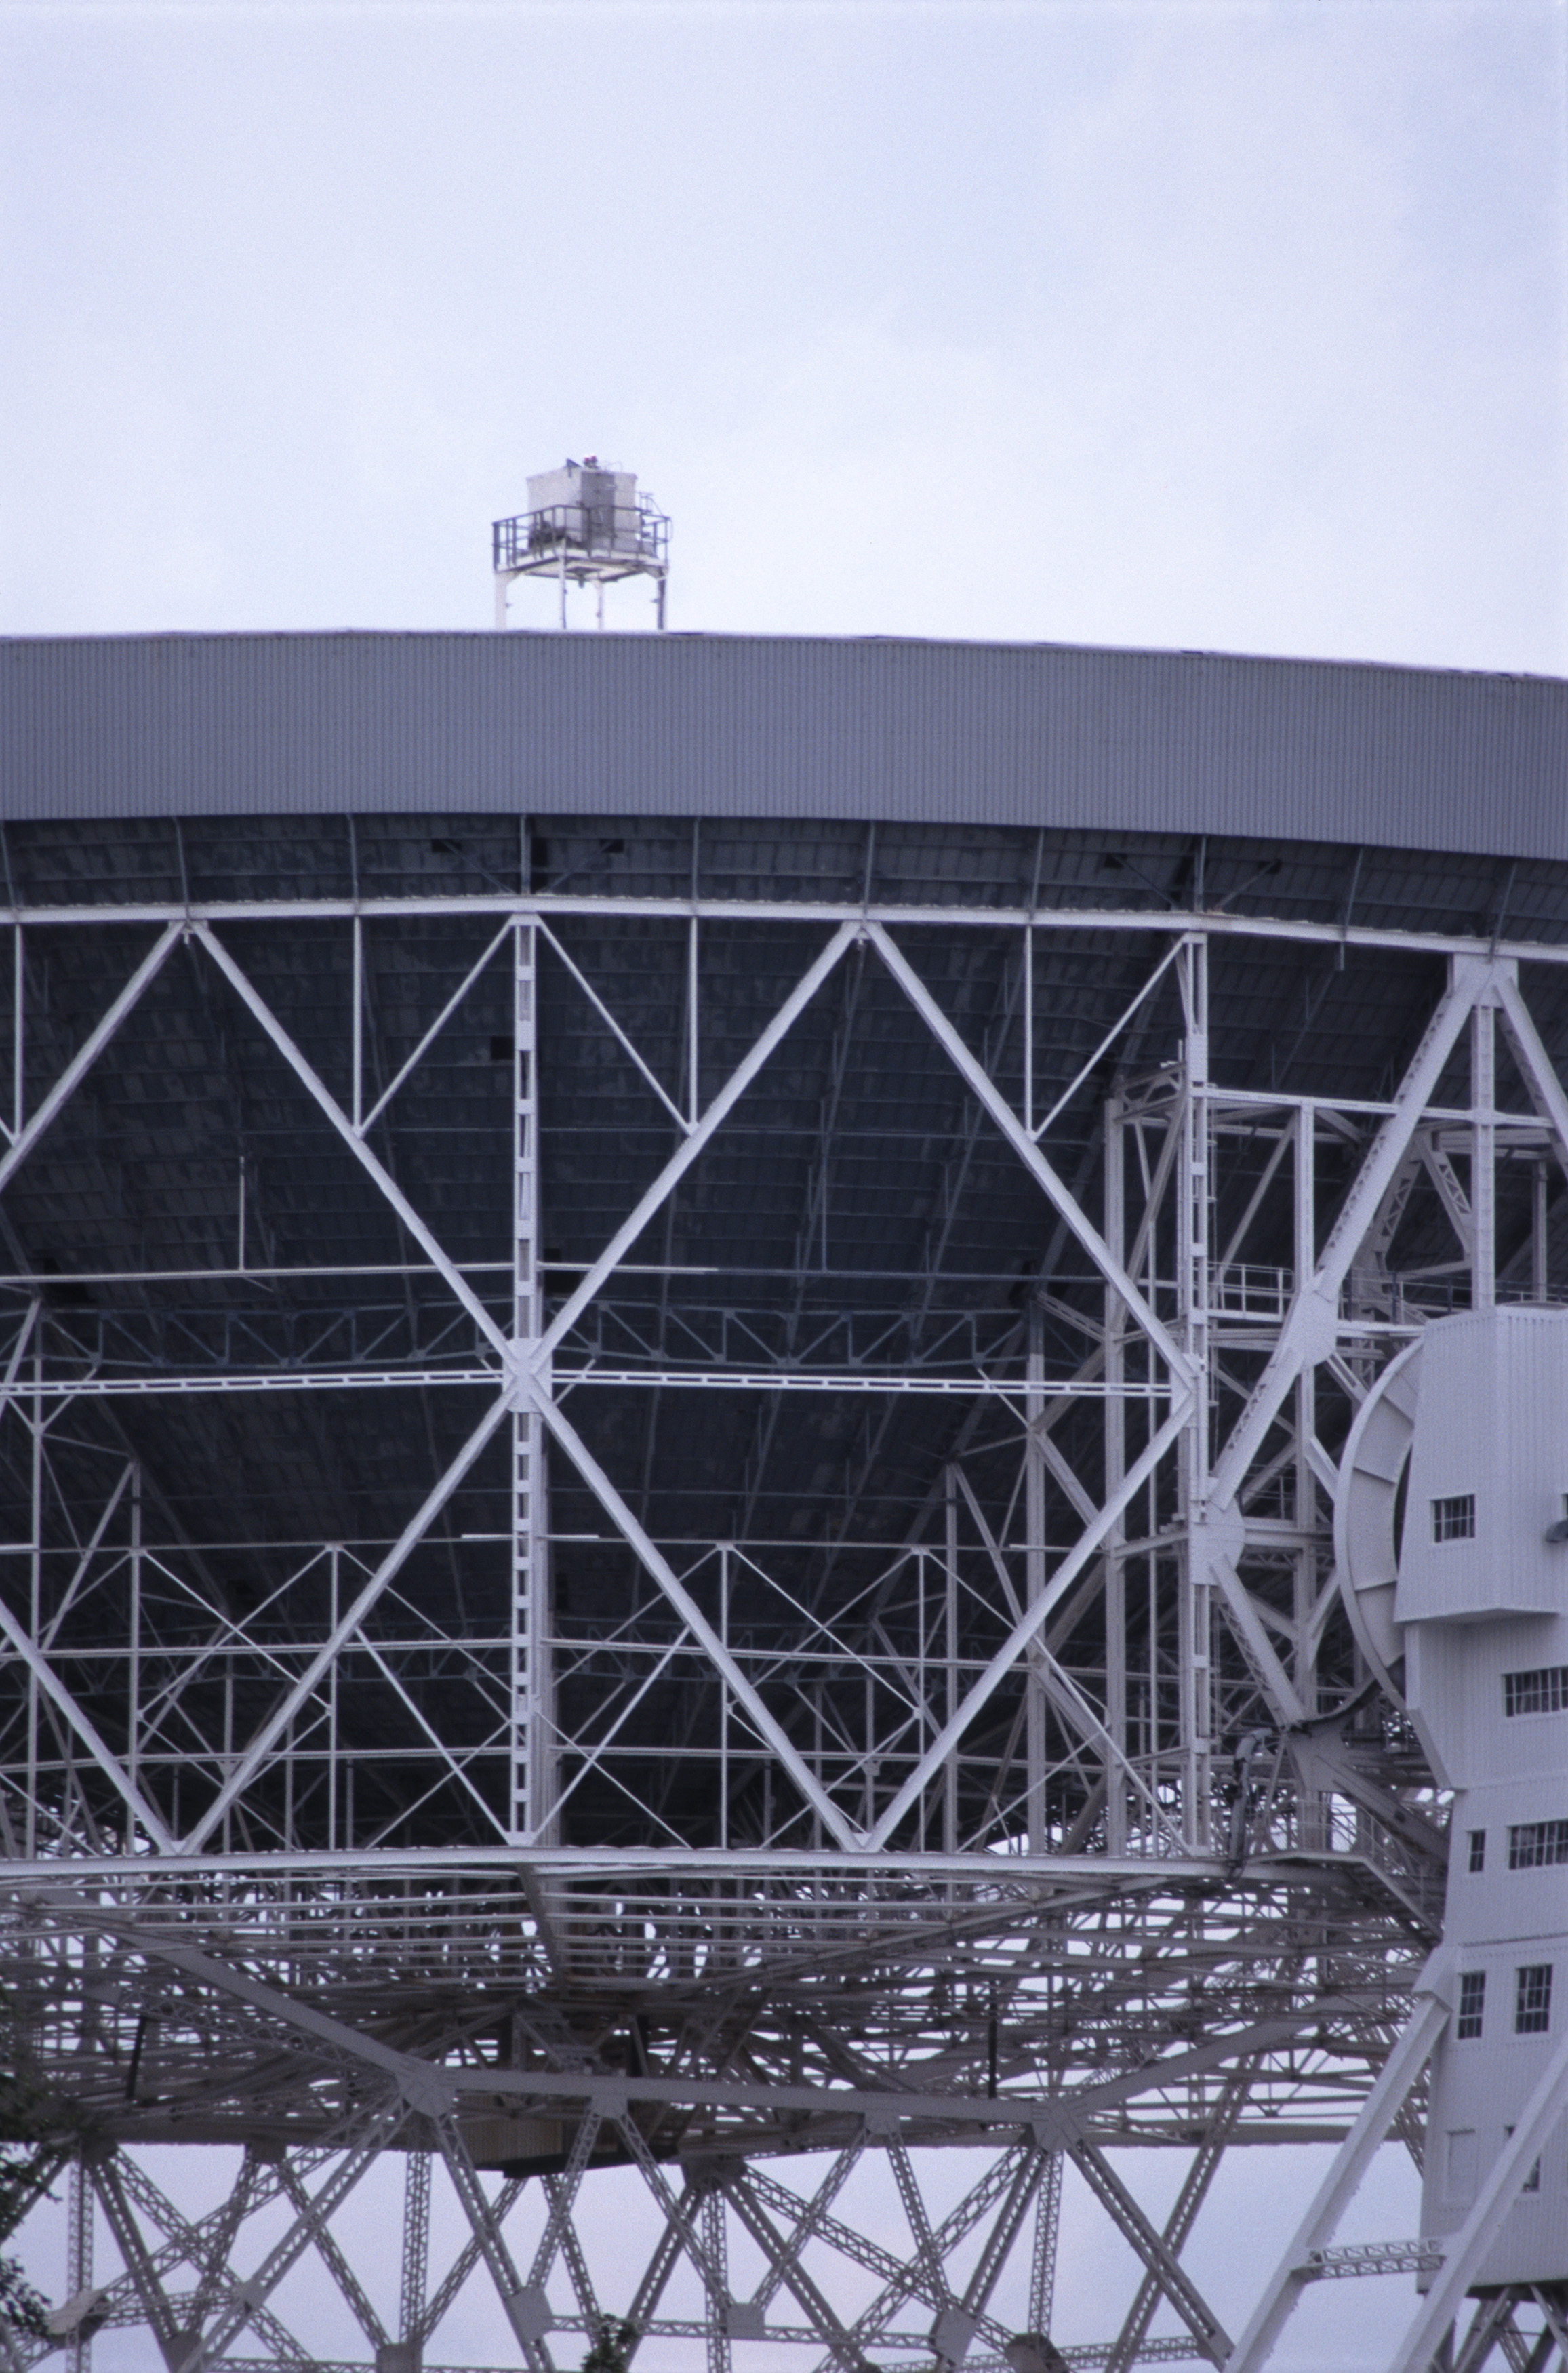 Jodrel bank Observatory, Britain which hosts a number of radio telescopes for use in astrophysics